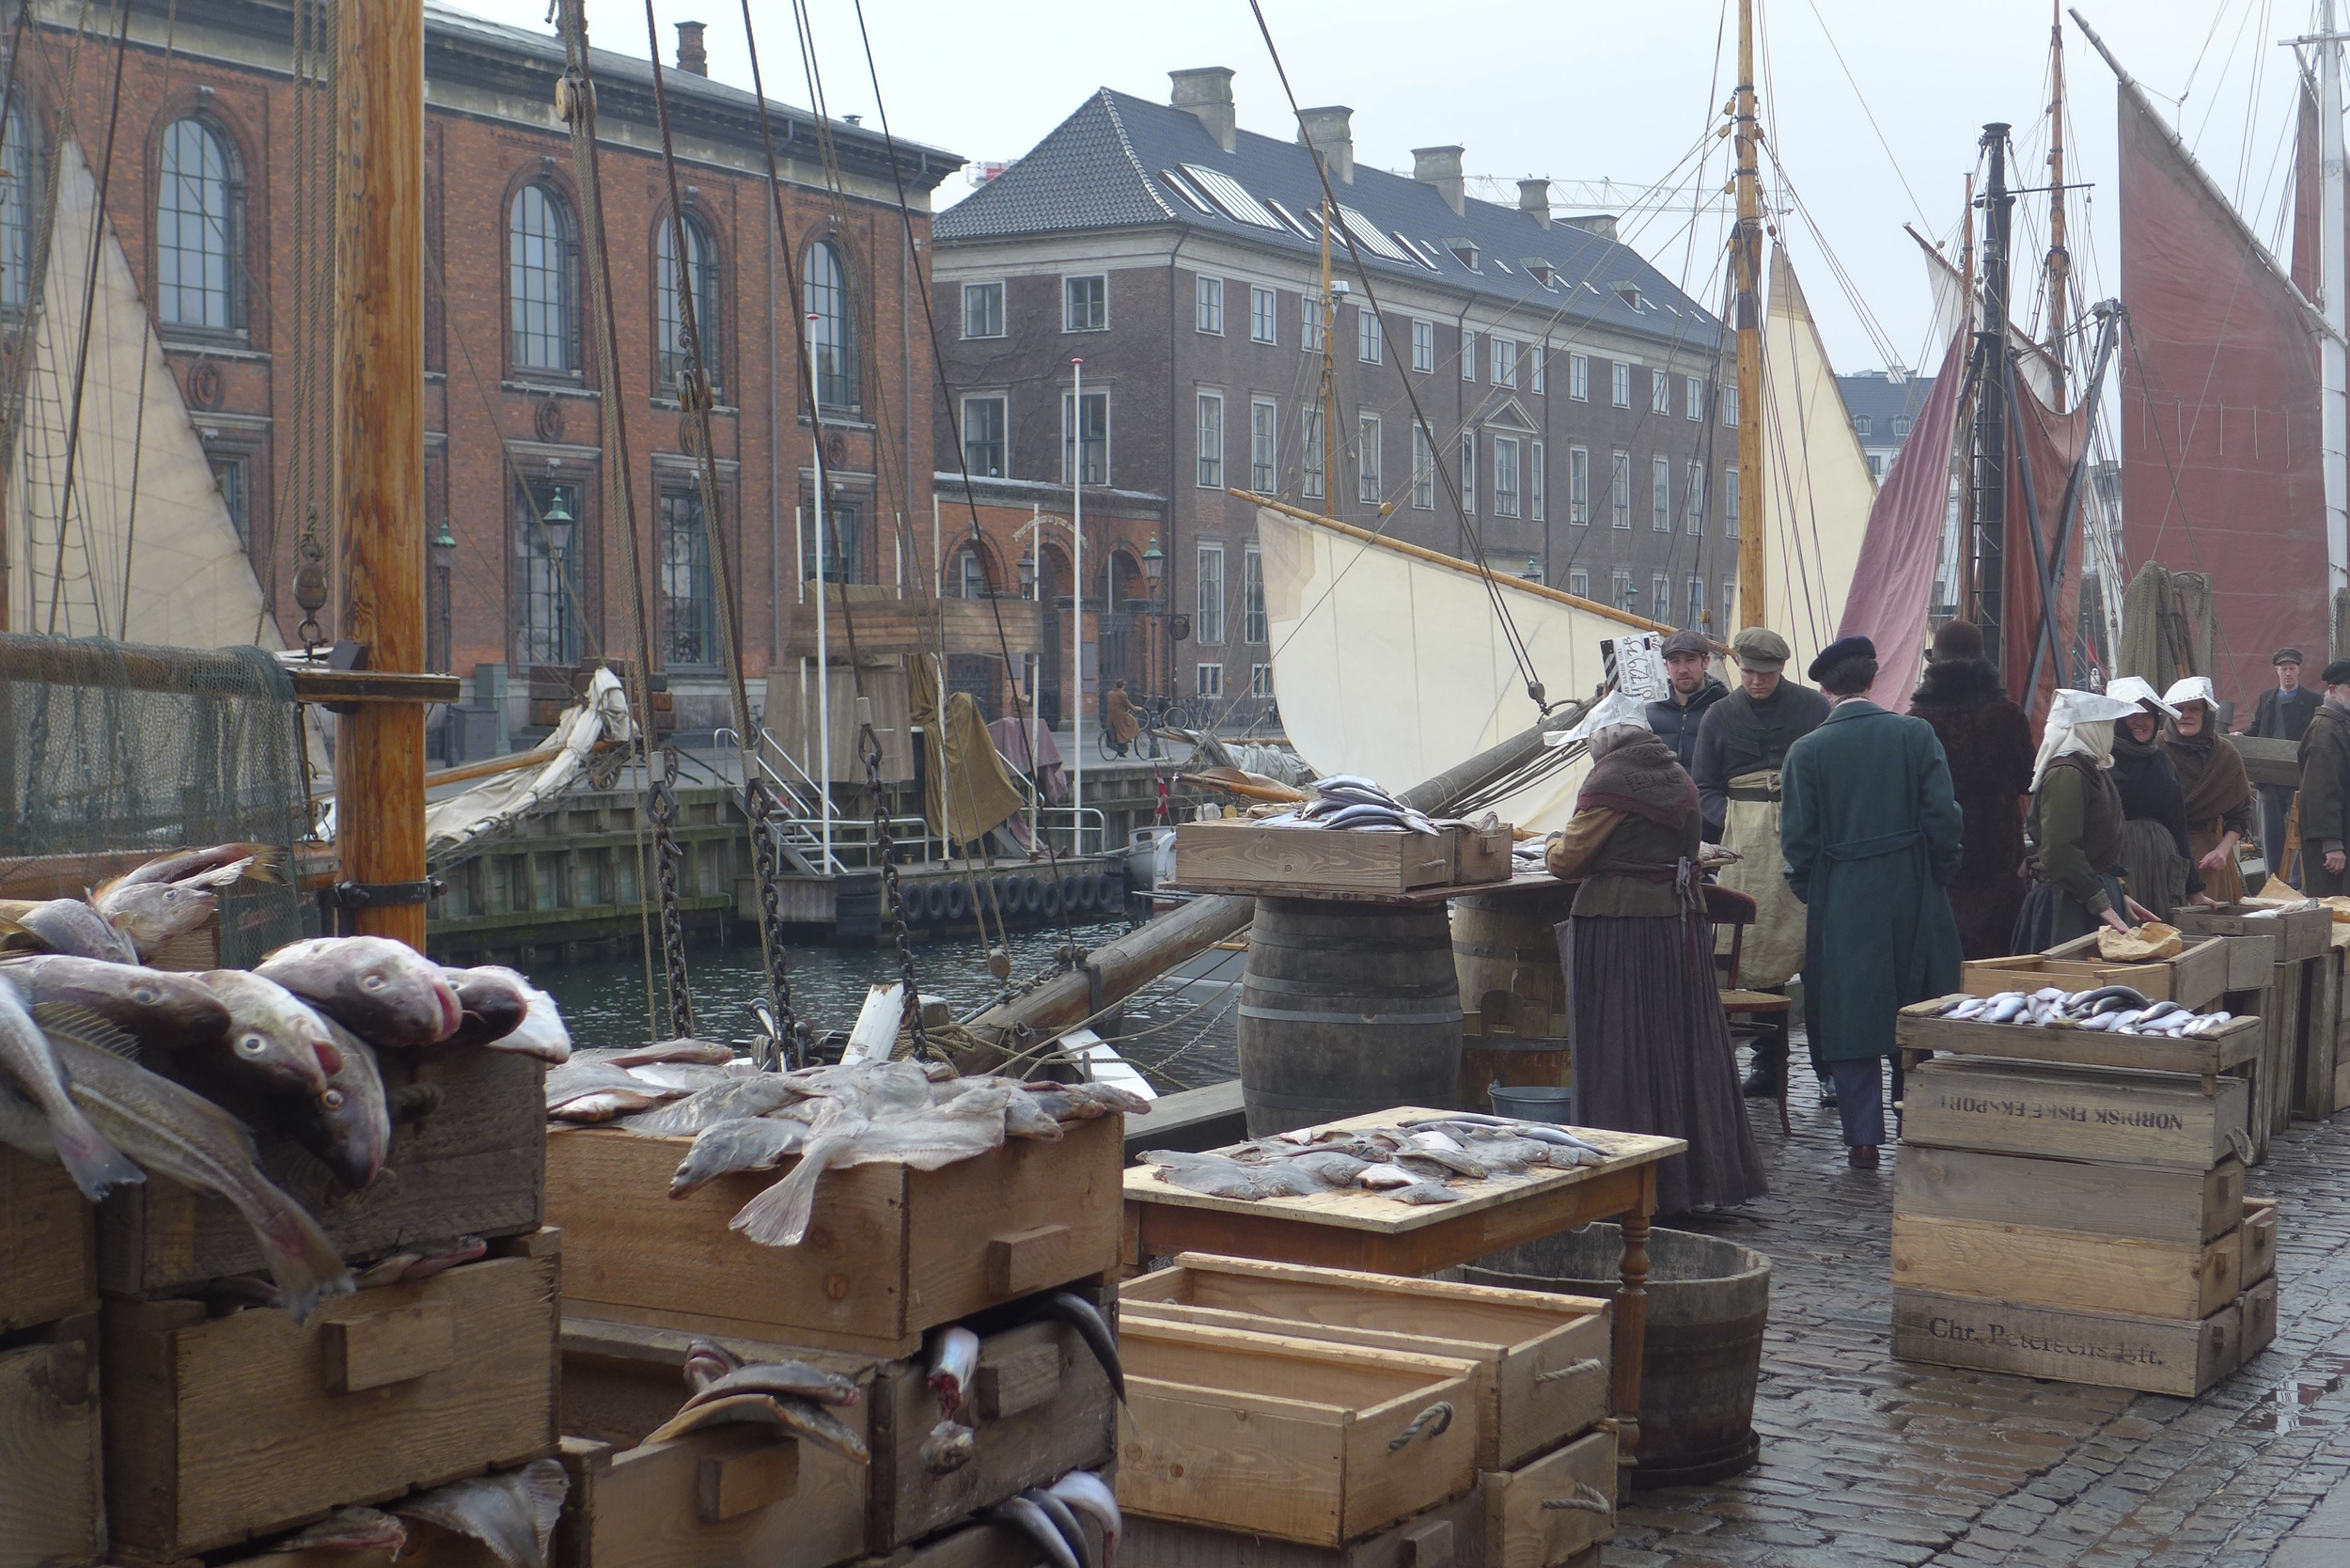 The Danish Girl. Copenhagen Harbour. Production Design Eve Stewart. Set Decoration Mike Standish.